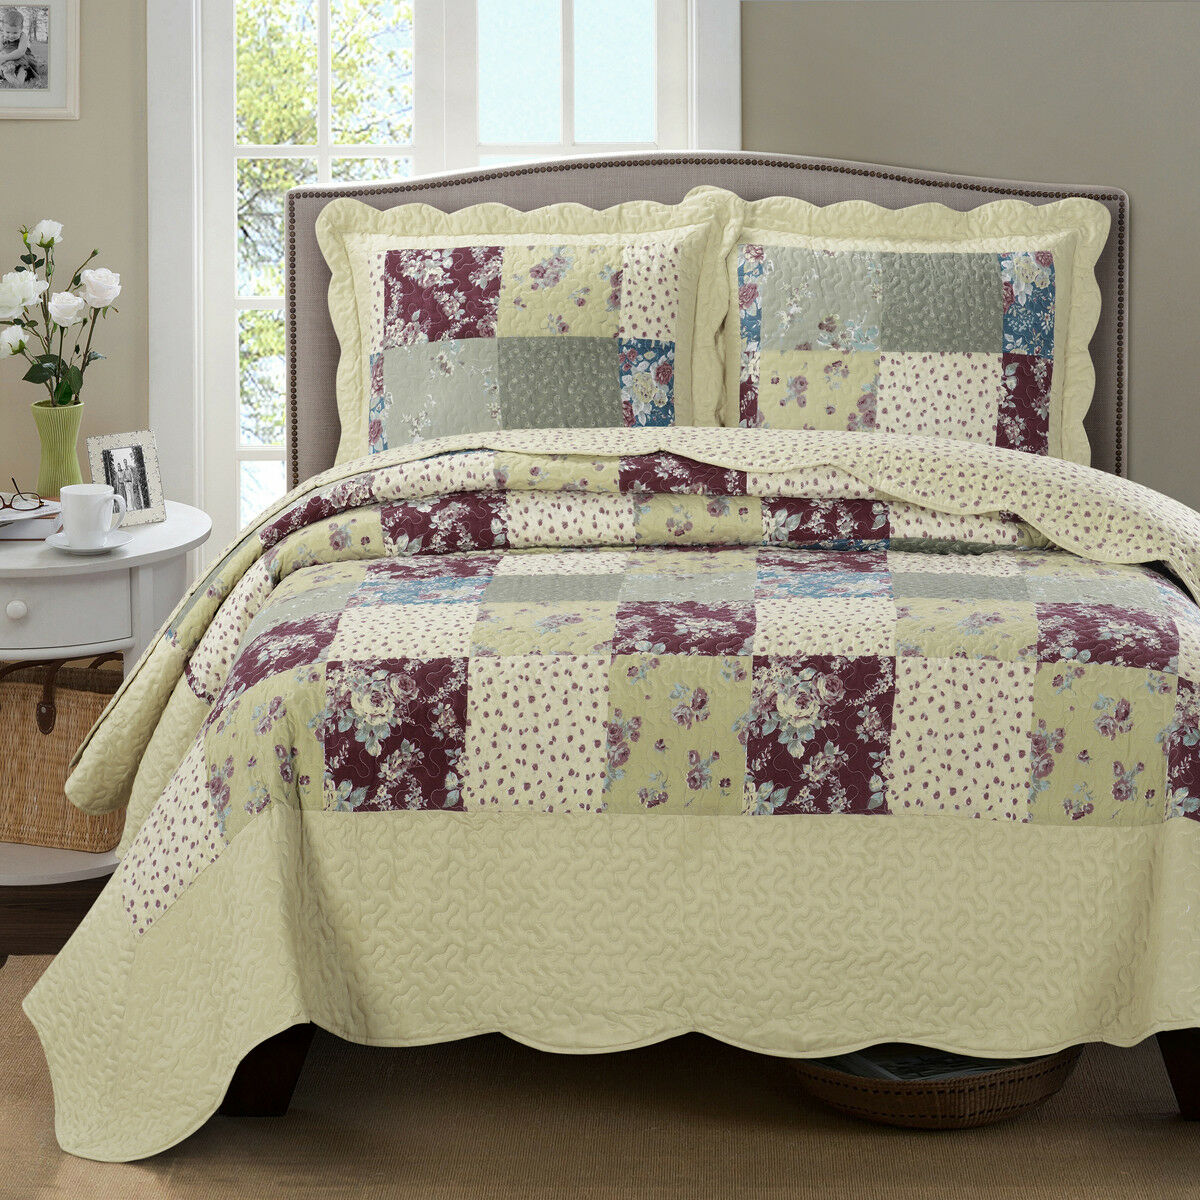 Luxury Tania OverGrößed Microfiber Coverlet Quilt Set with Pillow Shams